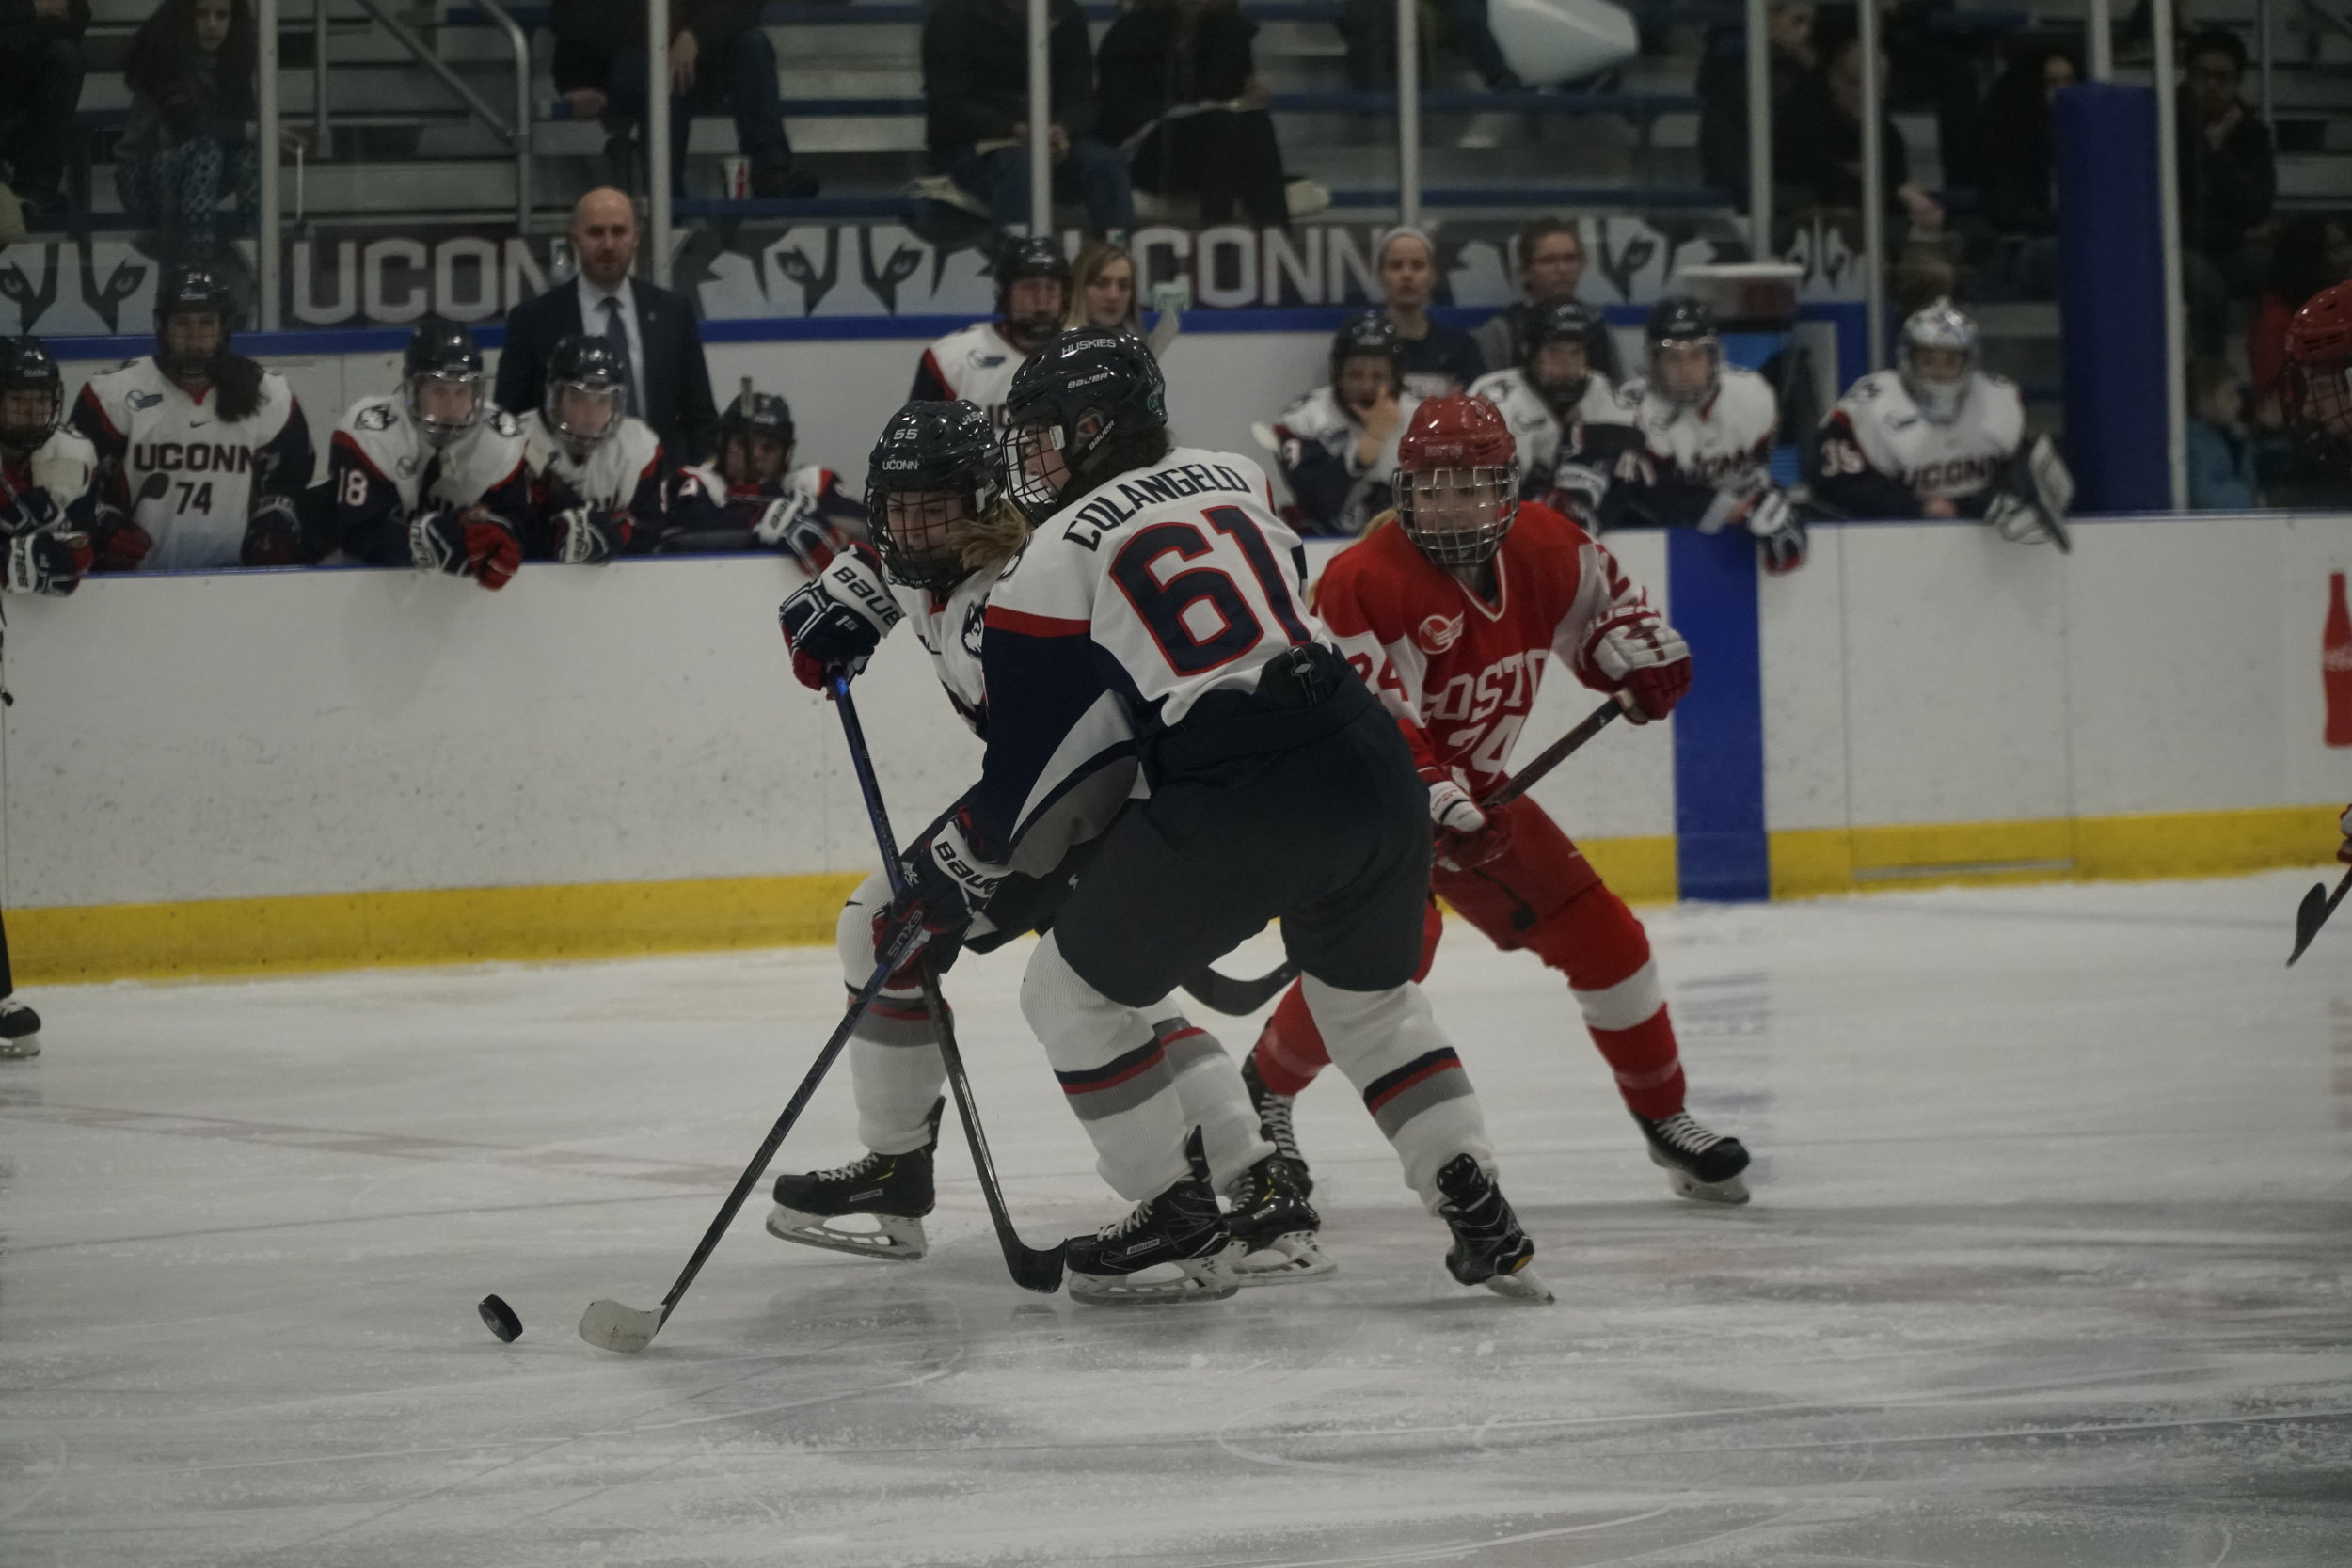 In front of one of the biggest home crowds of the season Friday night, UConn (14-16-4, 9-14-4 Hockey East) was unable to permeate BU's strong defense and goaltending. (Eric Wang/The Daily Campus)